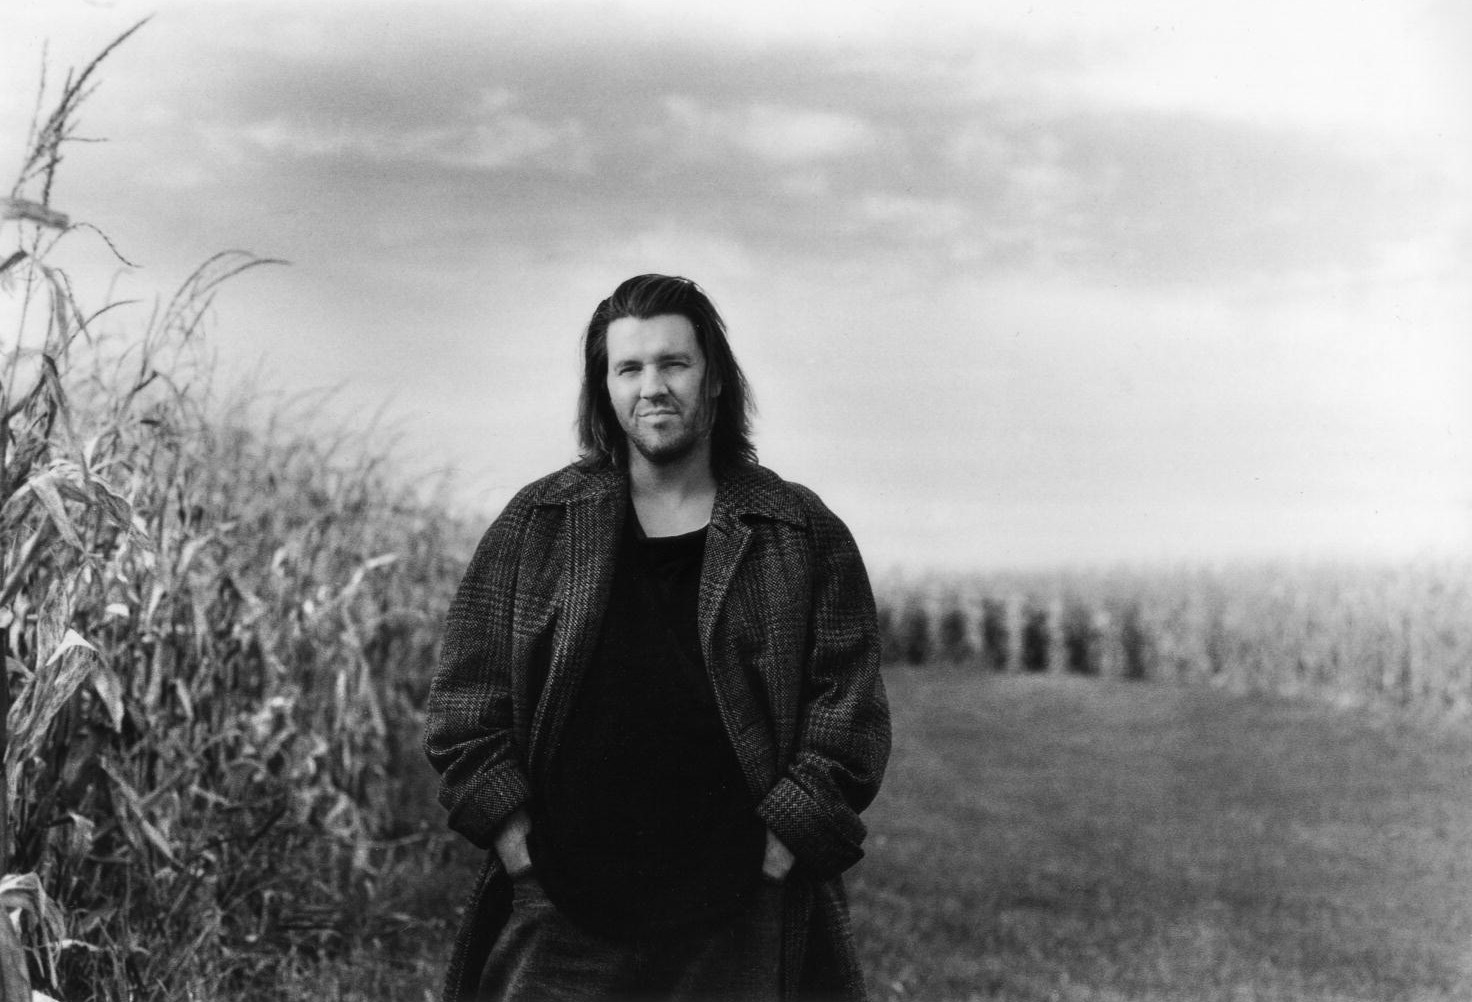 David Foster Wallace Searches For >> Review The Search For Transcendence In The Material Phenomenology